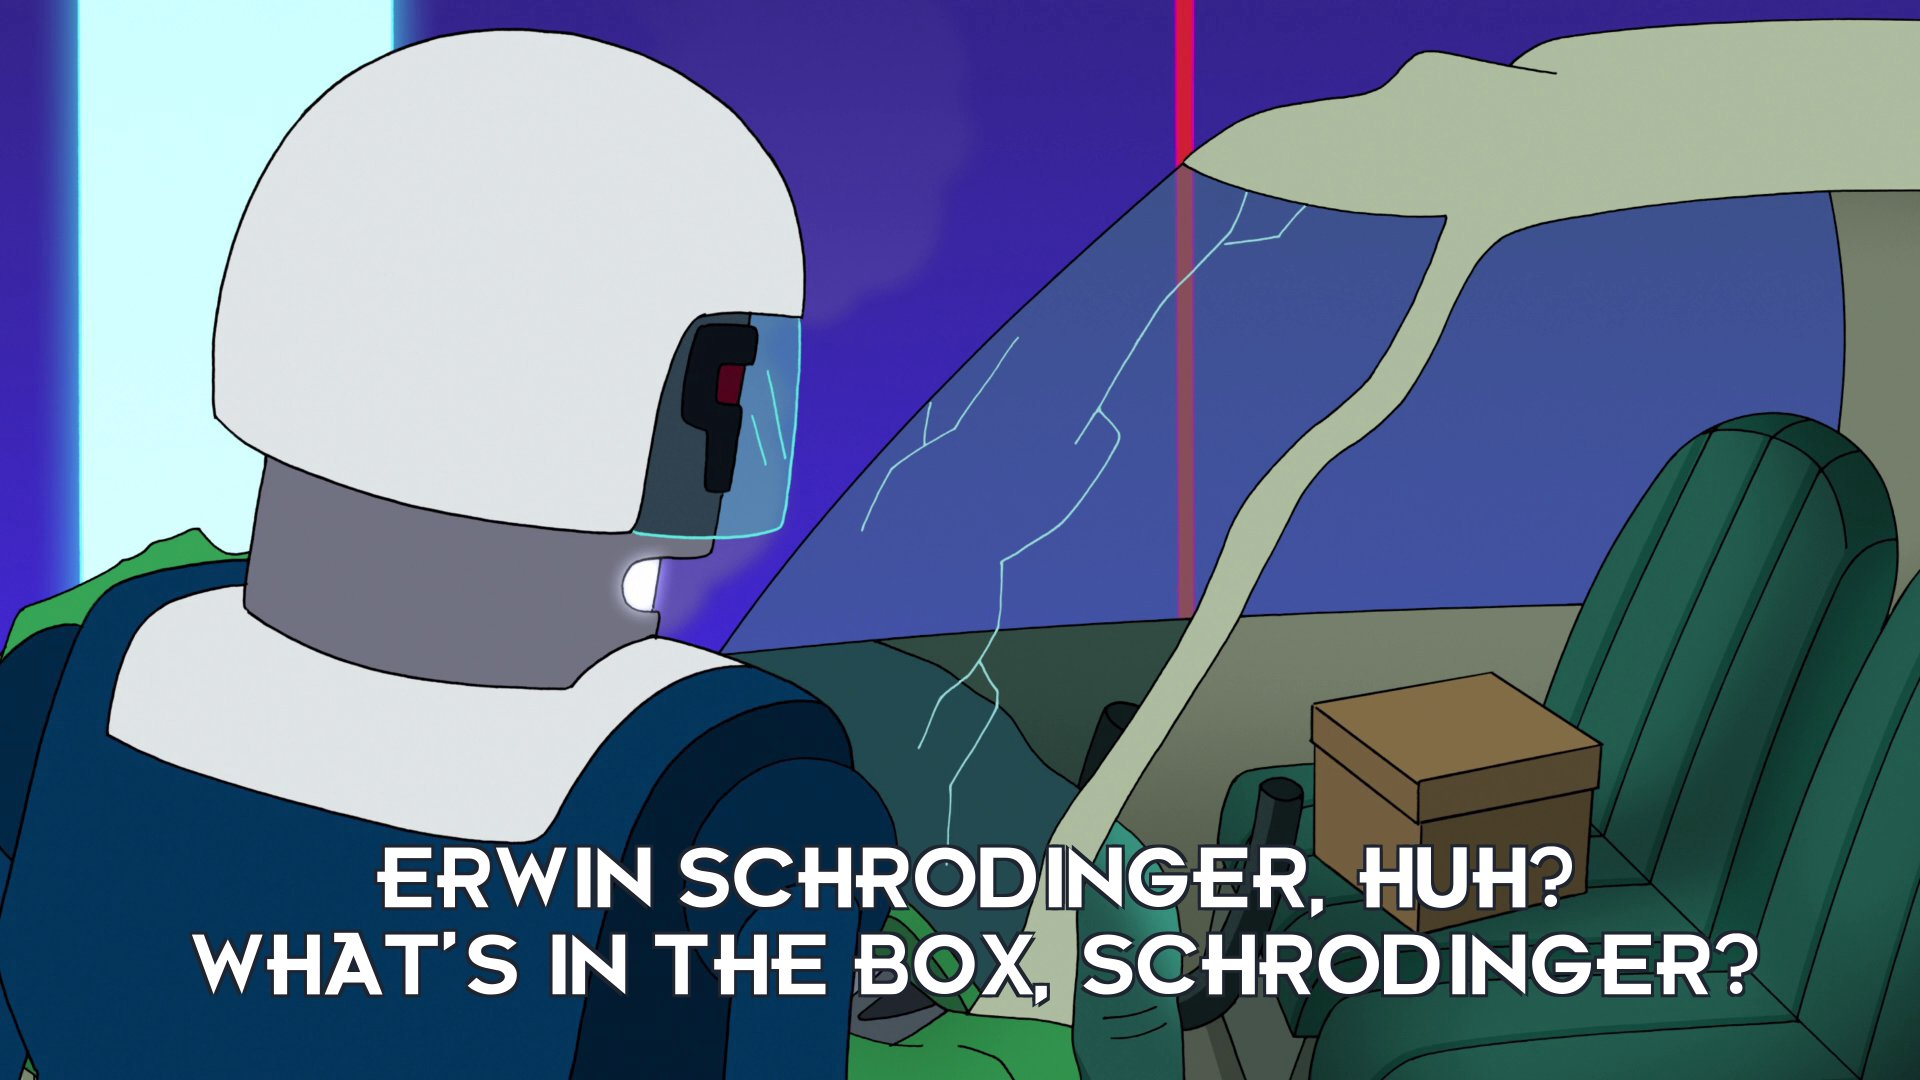 URL: Erwin Schrödinger, huh? What's in the box, Schrödinger?